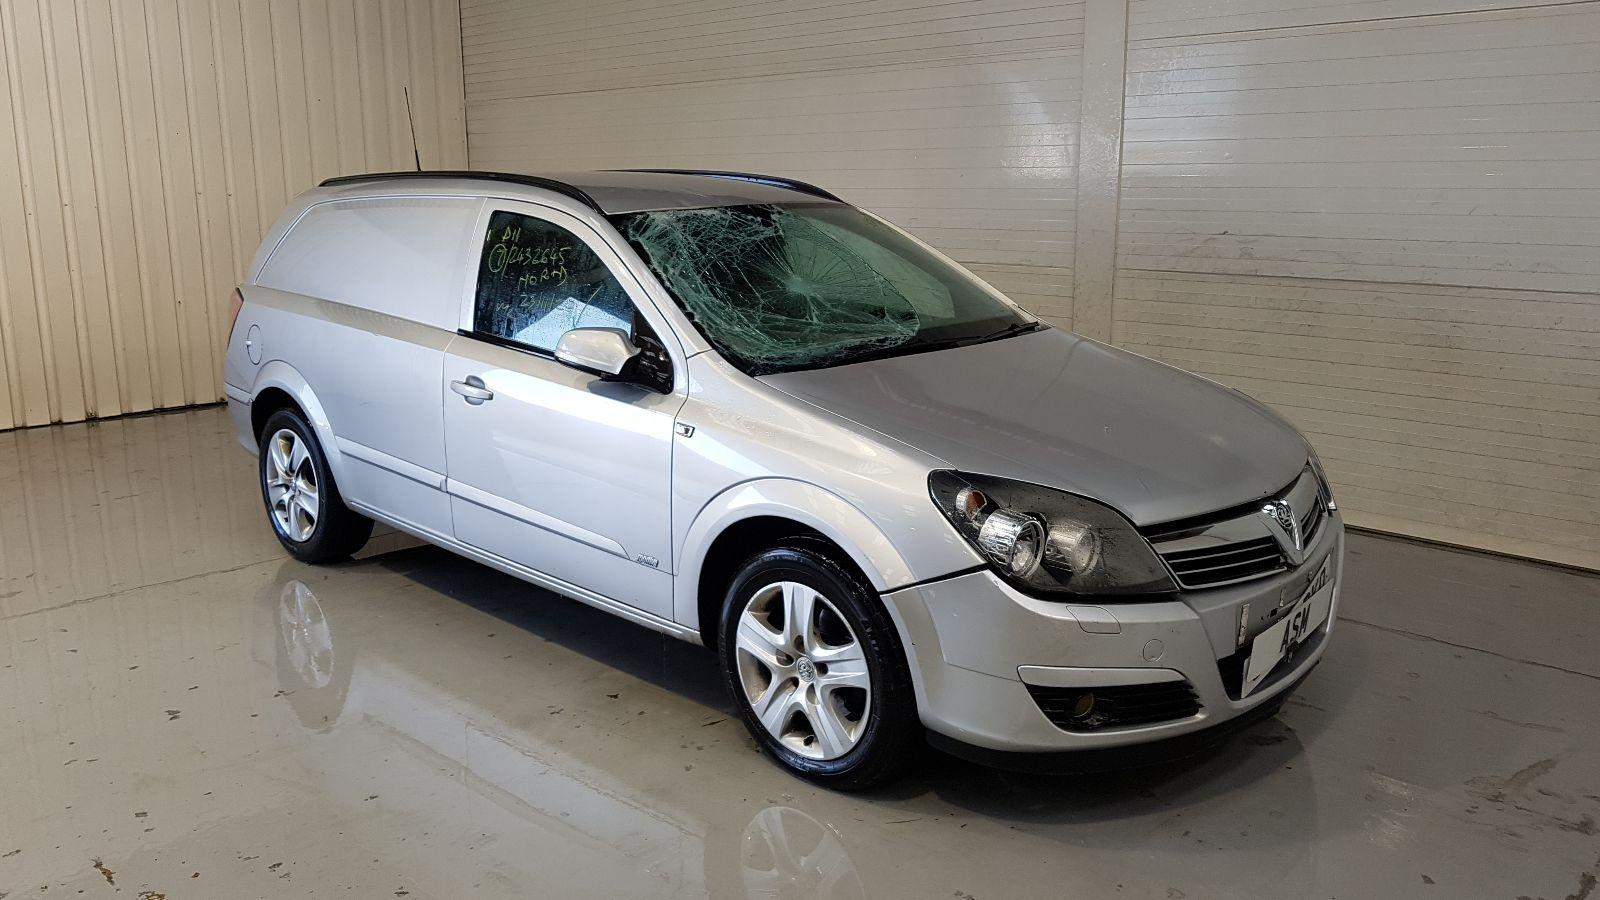 Image for a Vauxhall Astra 2009 Unknown Van